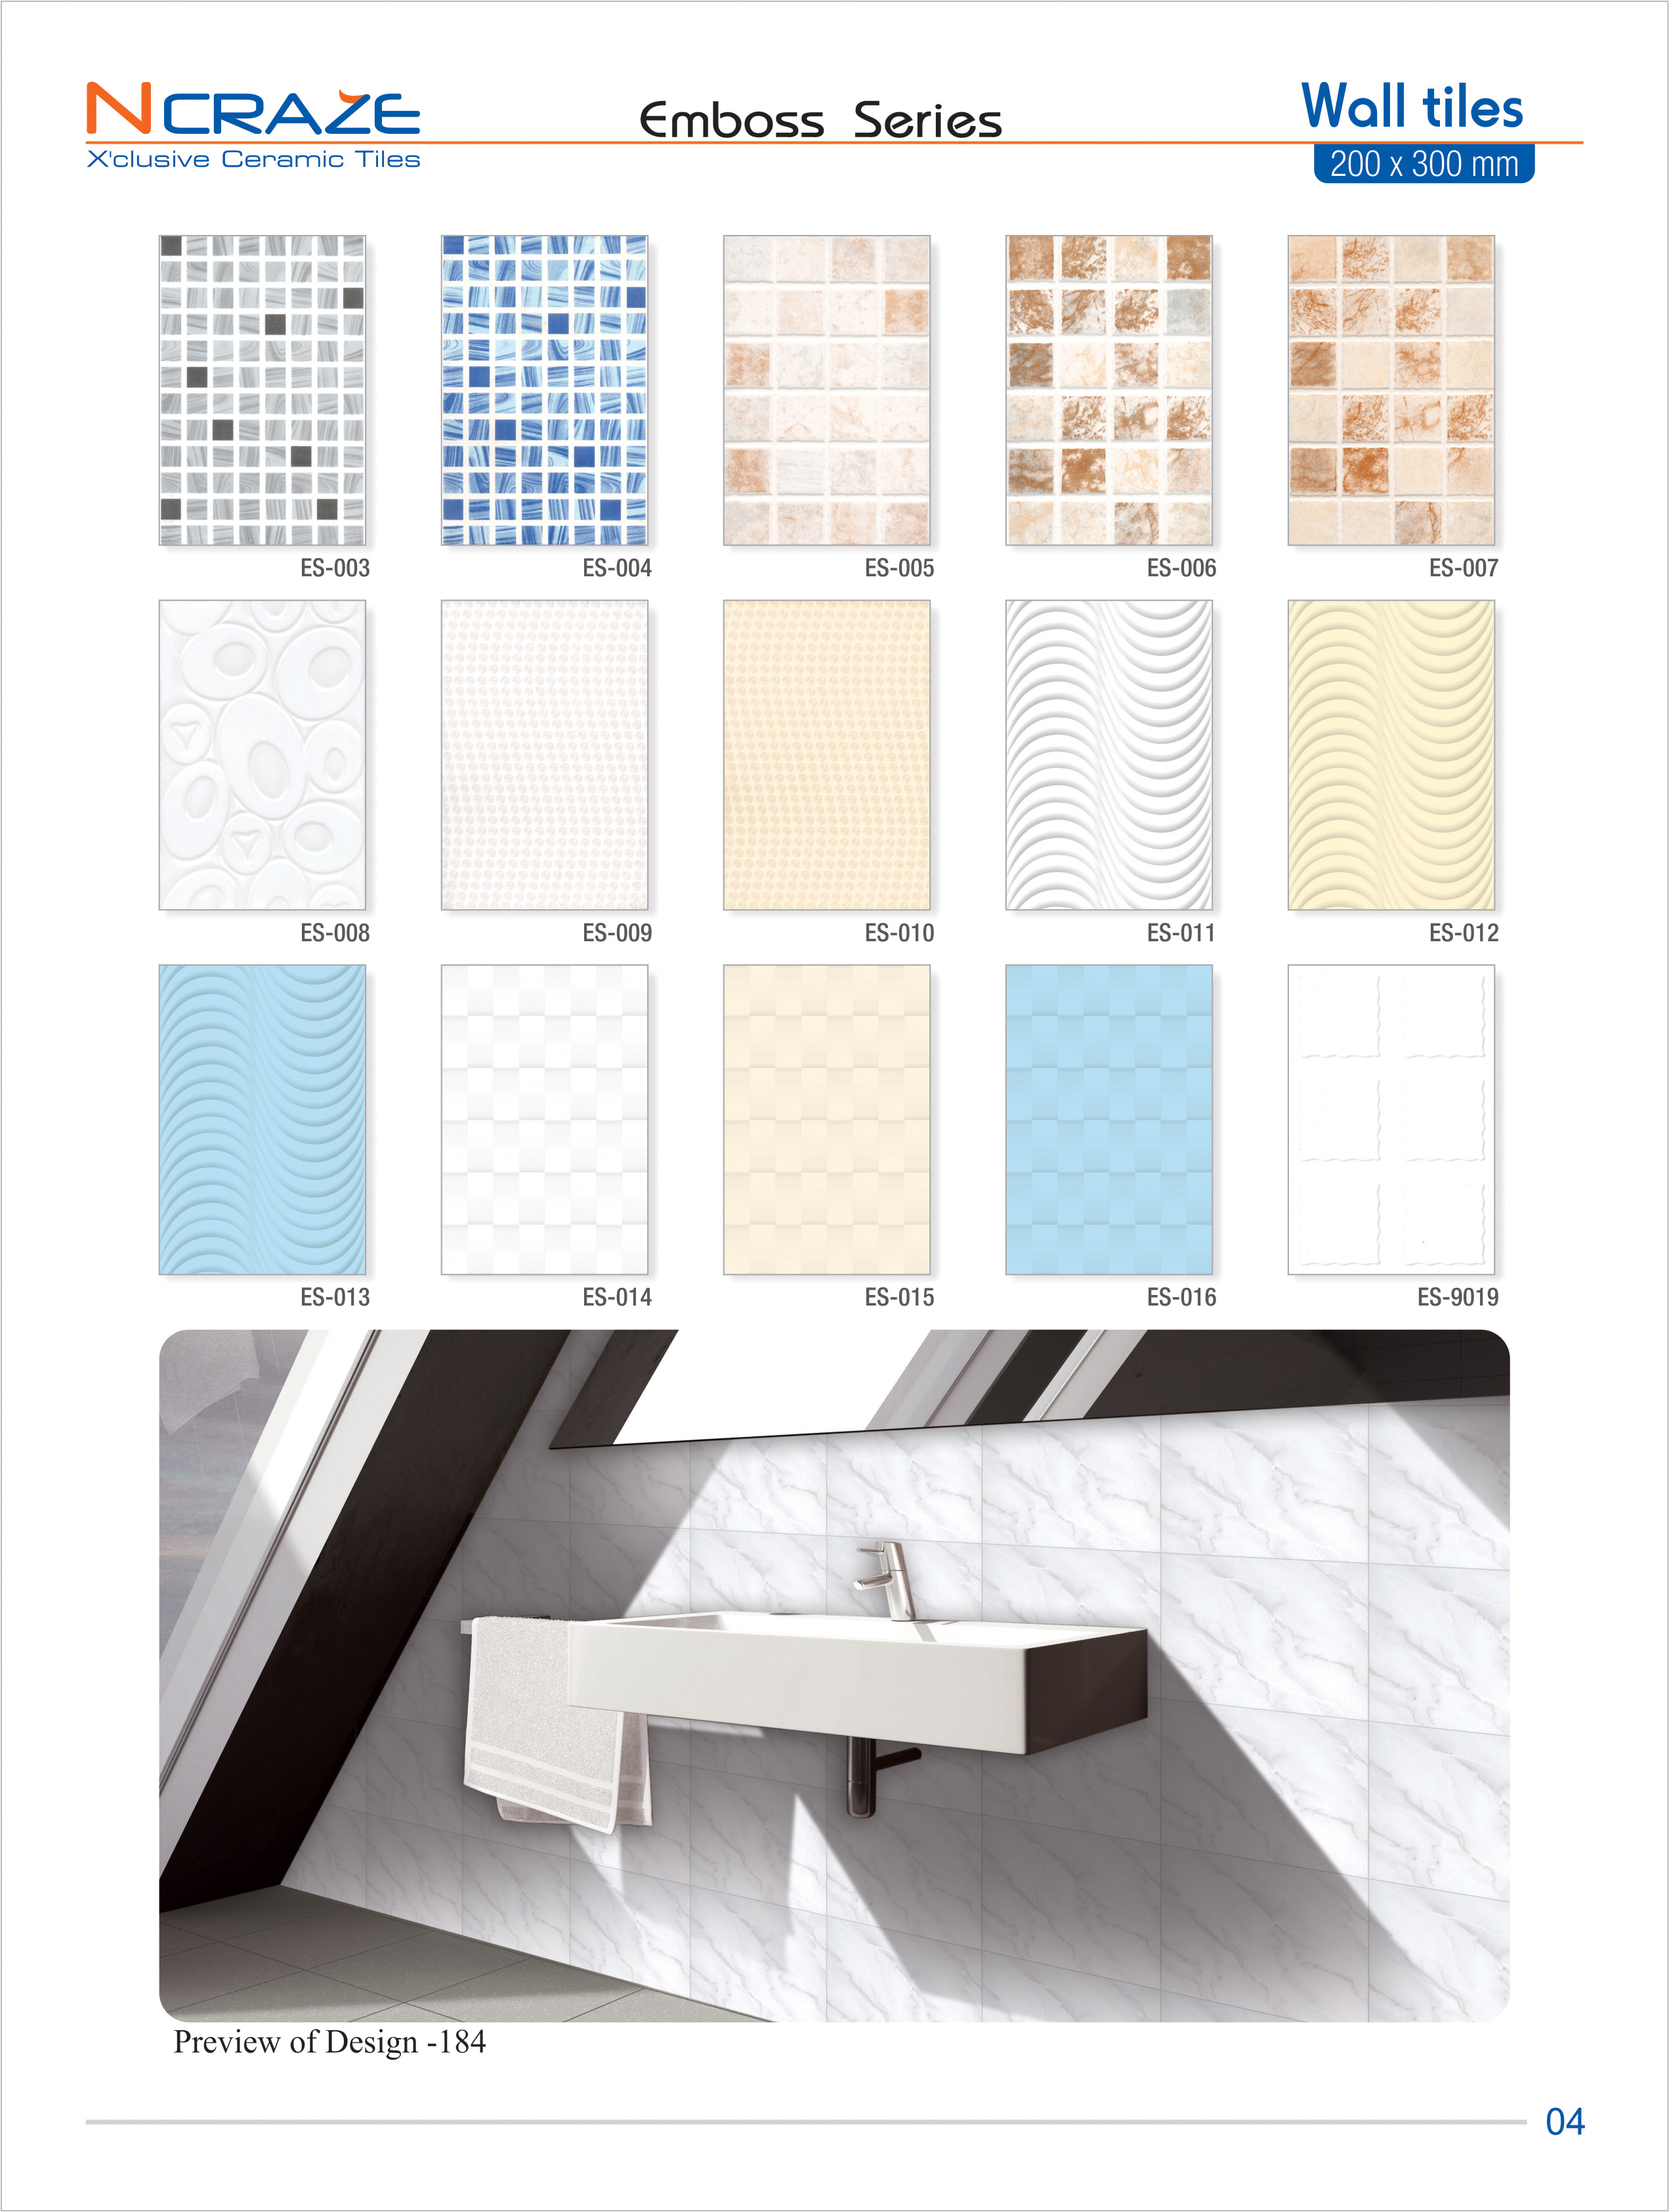 Low price cheapest wall tiles | Ncraze ceramic tiles- India